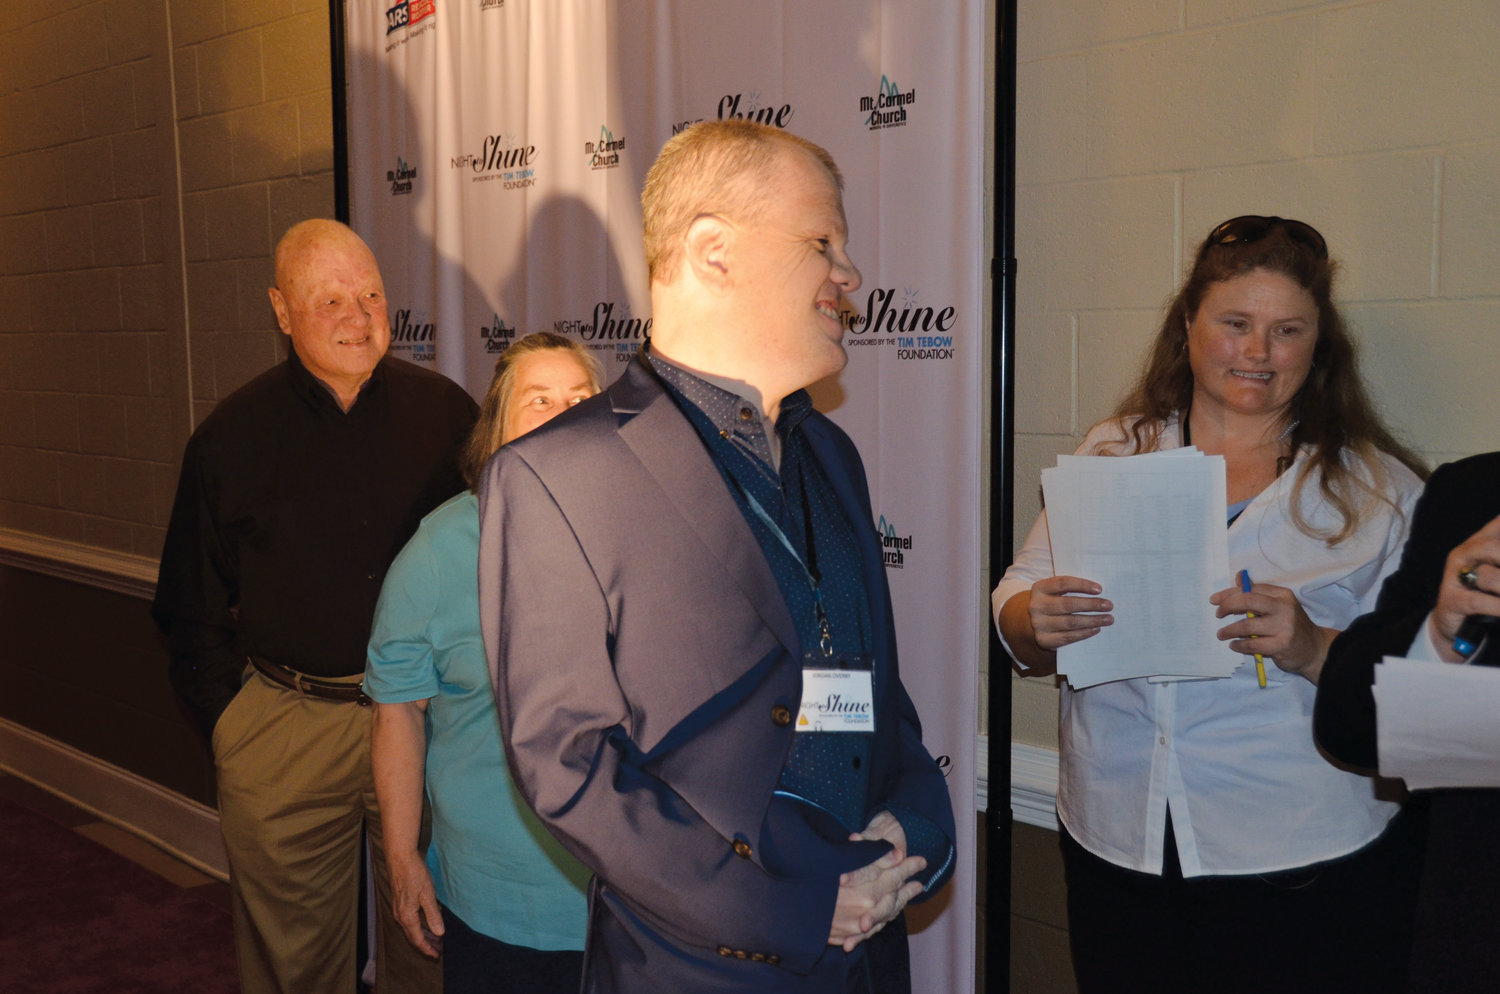 Scott Overby of Linden flashes a smile as his name is read and he's introduced to the crowd at the Night To Shine event at the Dunn Shrine Center Friday night. Scott was one of over 150 special needs guests to attend the prom. He's pictured with event organizer Jennifer Hardison and his parents, Larry and Debbie Overby.